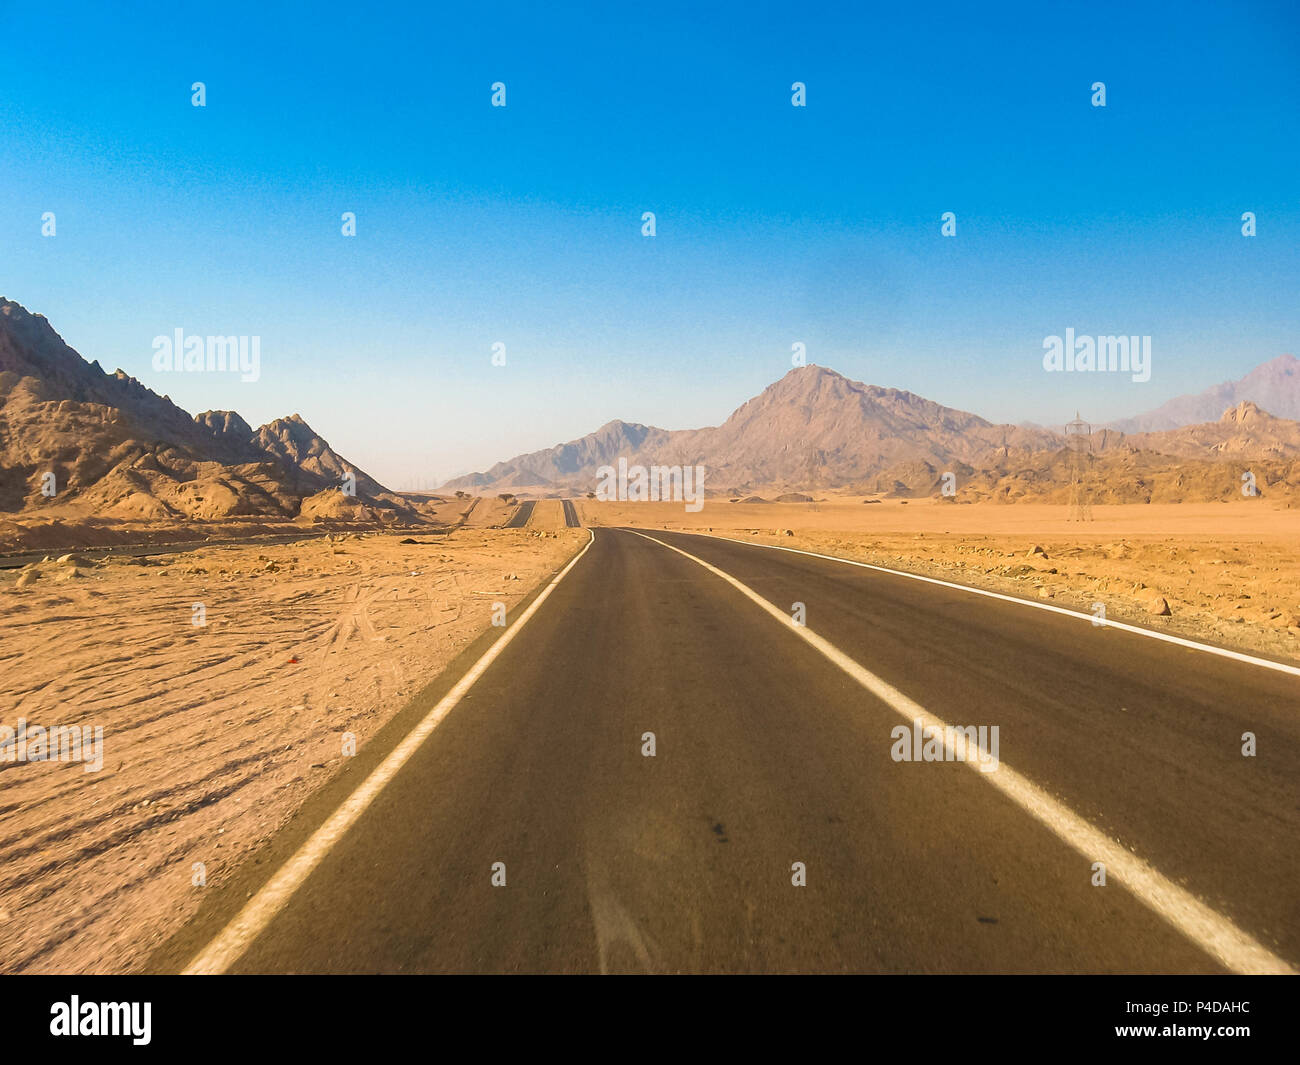 road to Colored Canyon, near Mount Sinai and Nuweiba, Sinai Peninsula in Egypt. - Stock Image